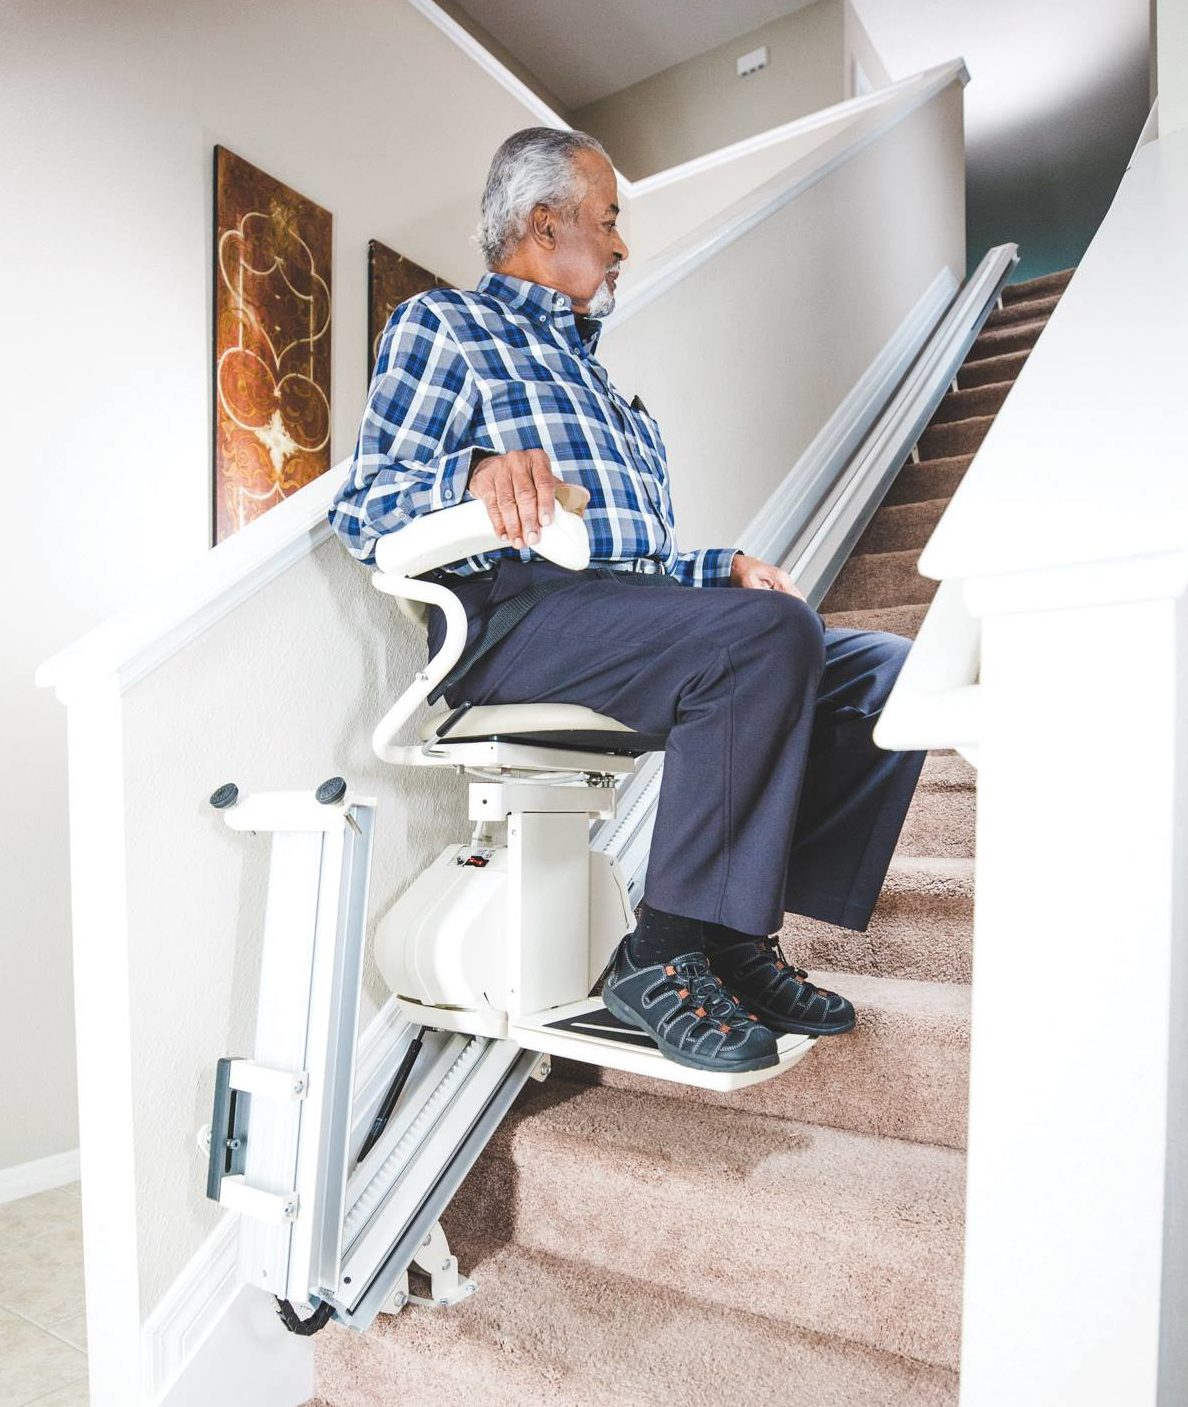 Harmar SL300 Stairlift, Available for Rent or Purchase throughout SE Wisconsin